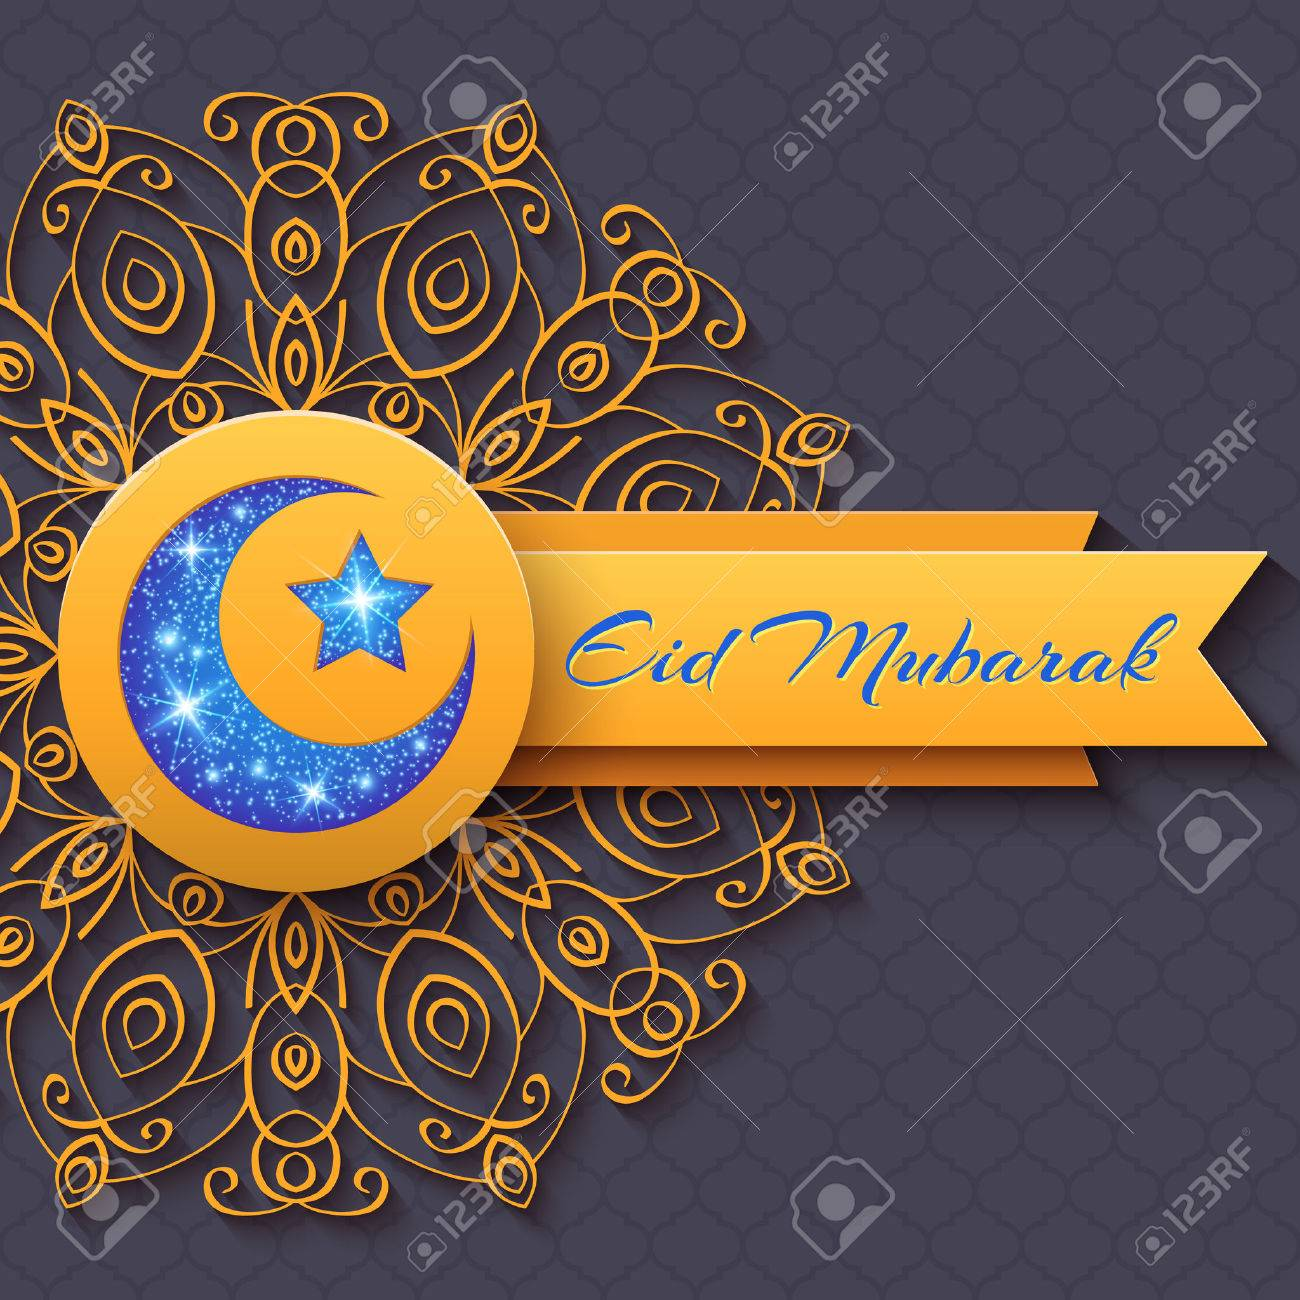 Colorful greeting card eid mubarak with round decorative pattern colorful greeting card eid mubarak with round decorative pattern and shining star and moon for holy m4hsunfo